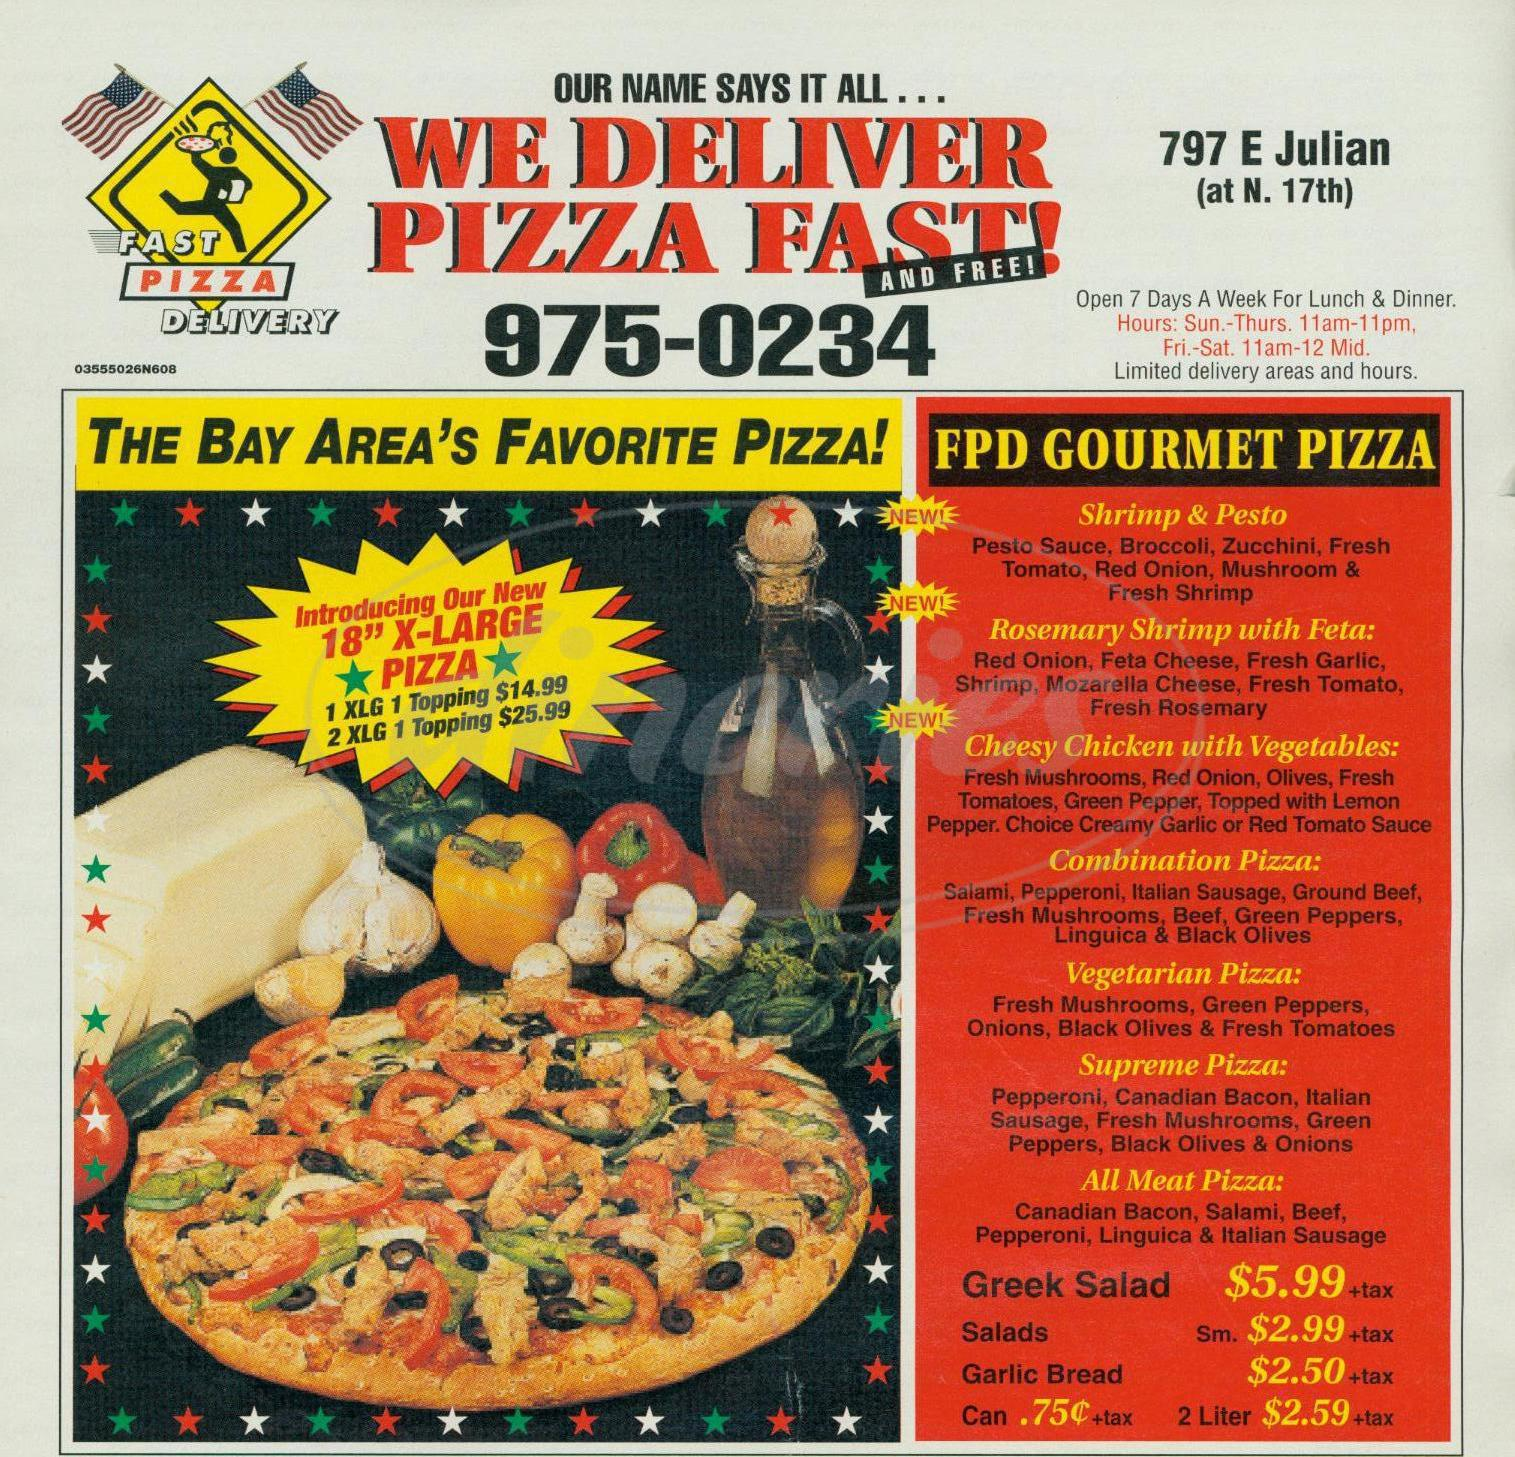 menu for Fast Pizza Delivery